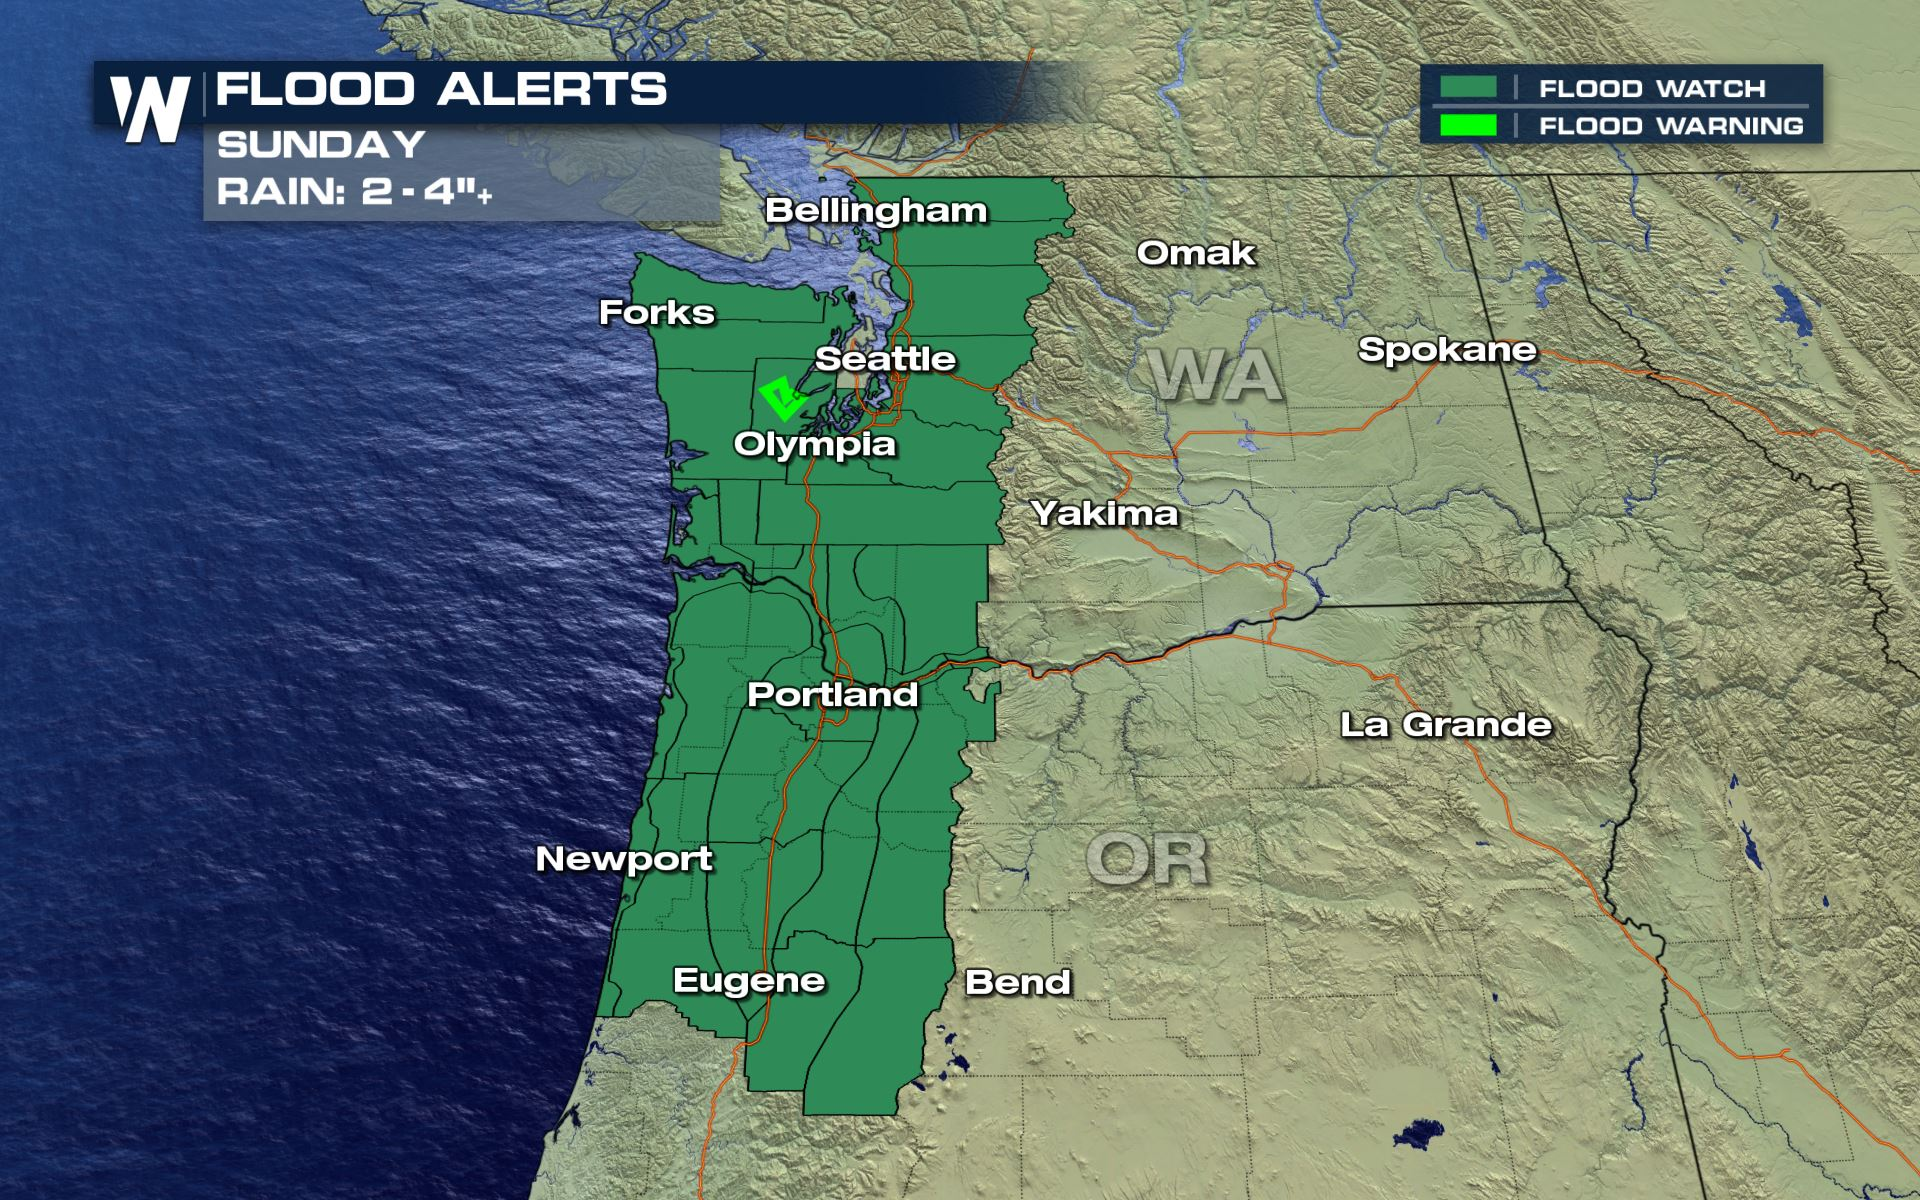 Heavy Rain Sunday for the Pacific Northwest